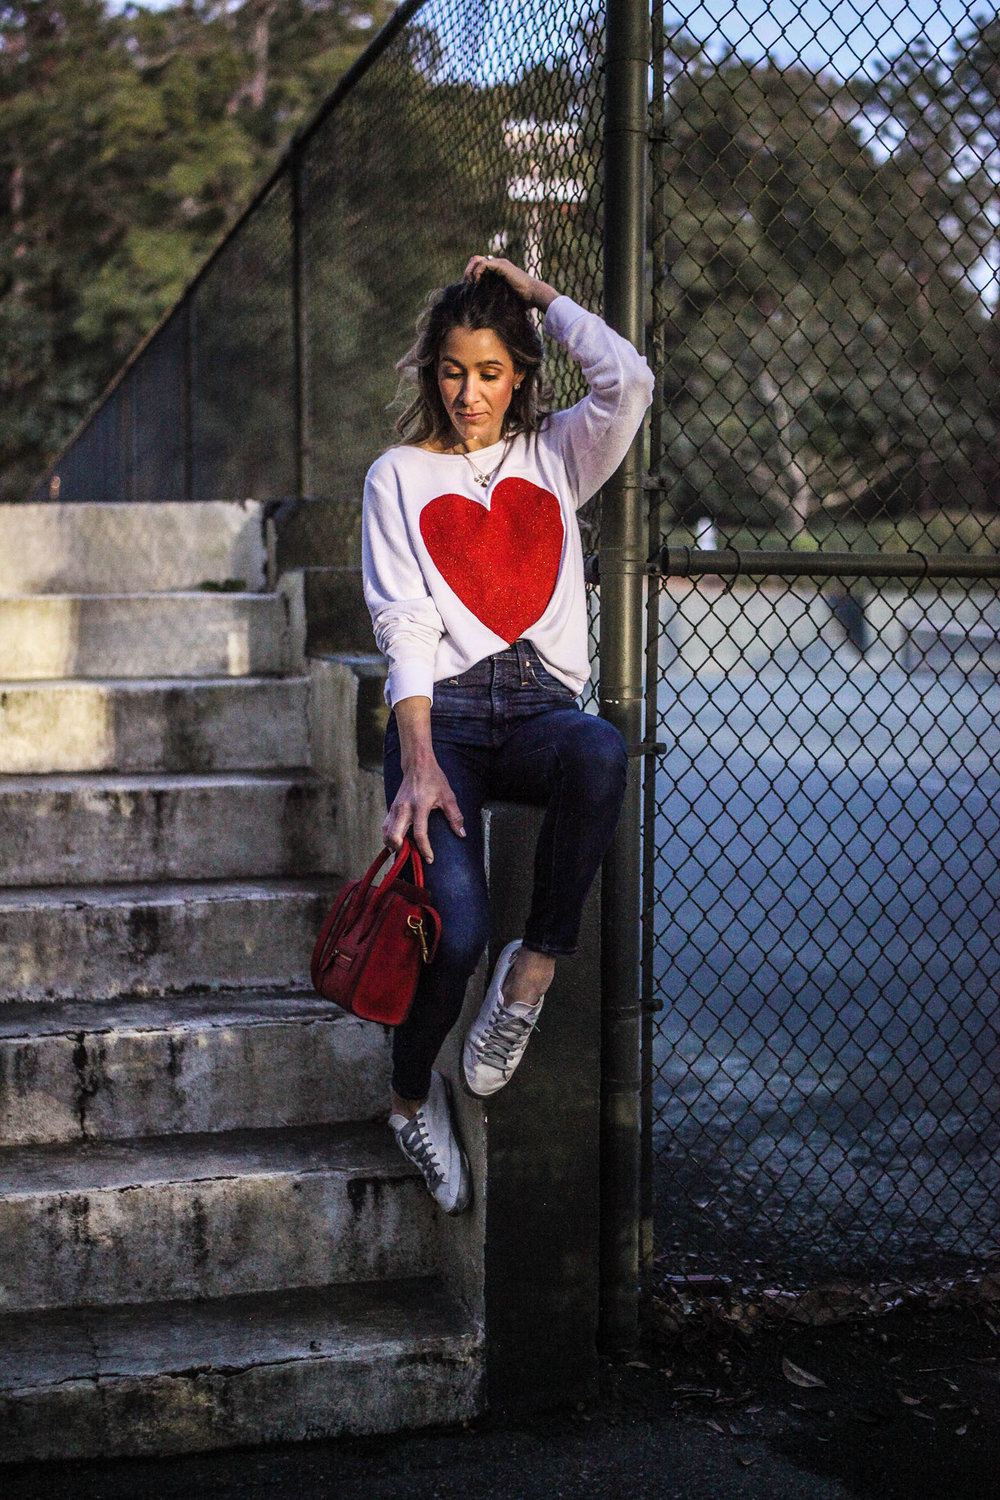 HEART SWEATSHIRT - WILDFOX - ON SALE  HERE  - | JEANS -  HERE  | SNEAKERS - DUPE VERSION  HERE  | HANDBAG - CELINE - HERE - DUPE VERSION -  HERE